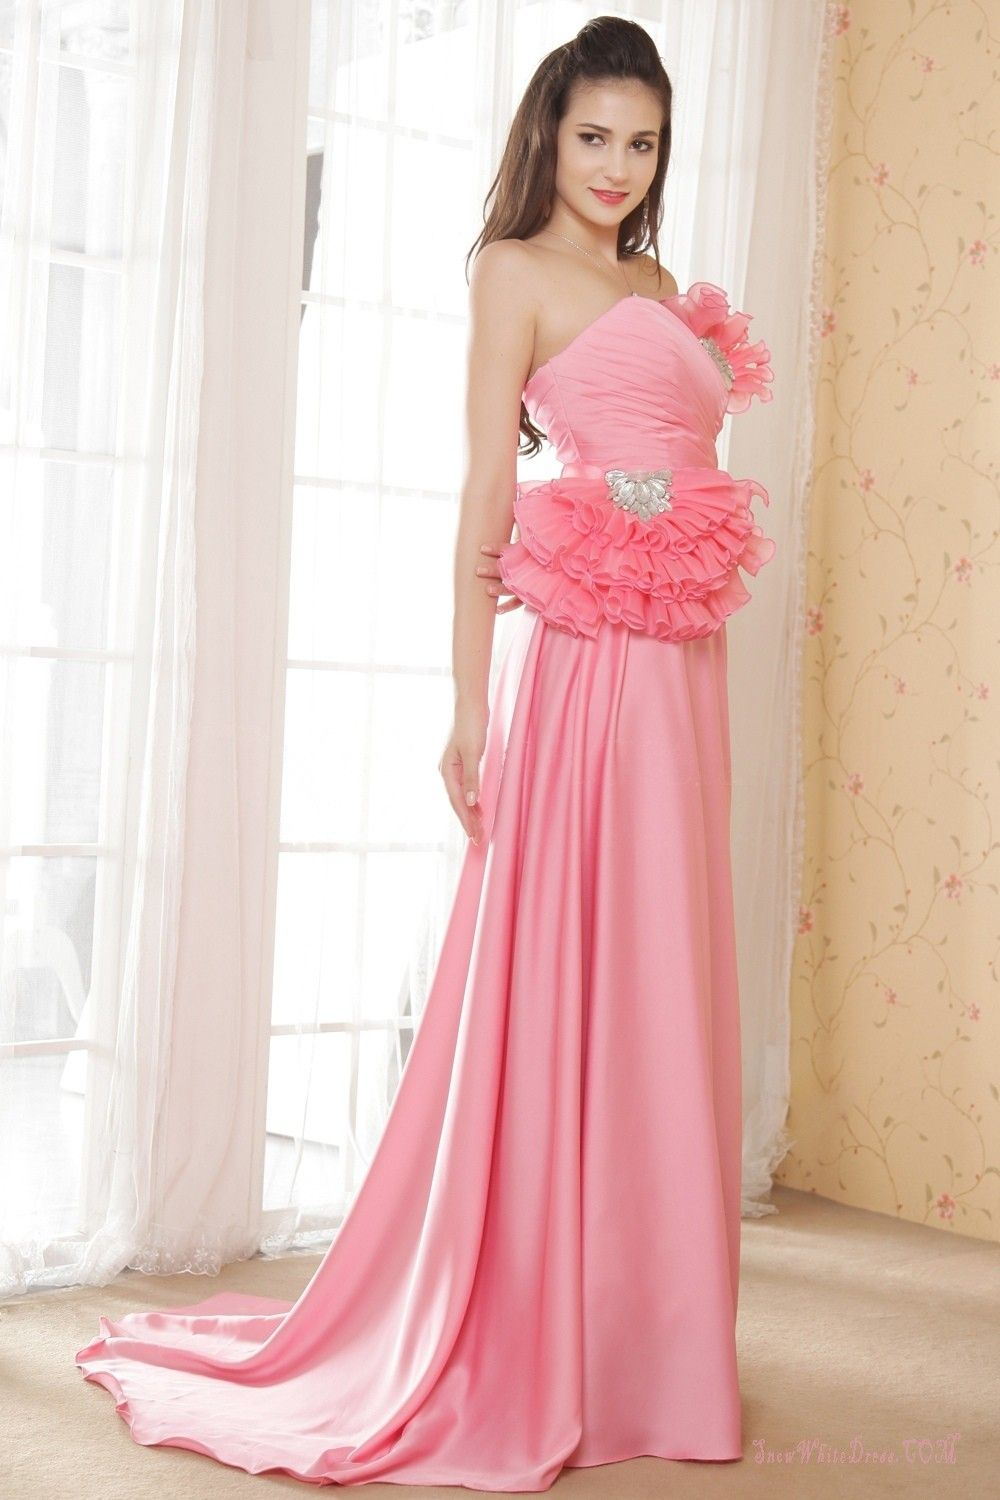 Pink Ruffles Floor Length Evening Gown | Wedding & Formal Gowns 2014 ...